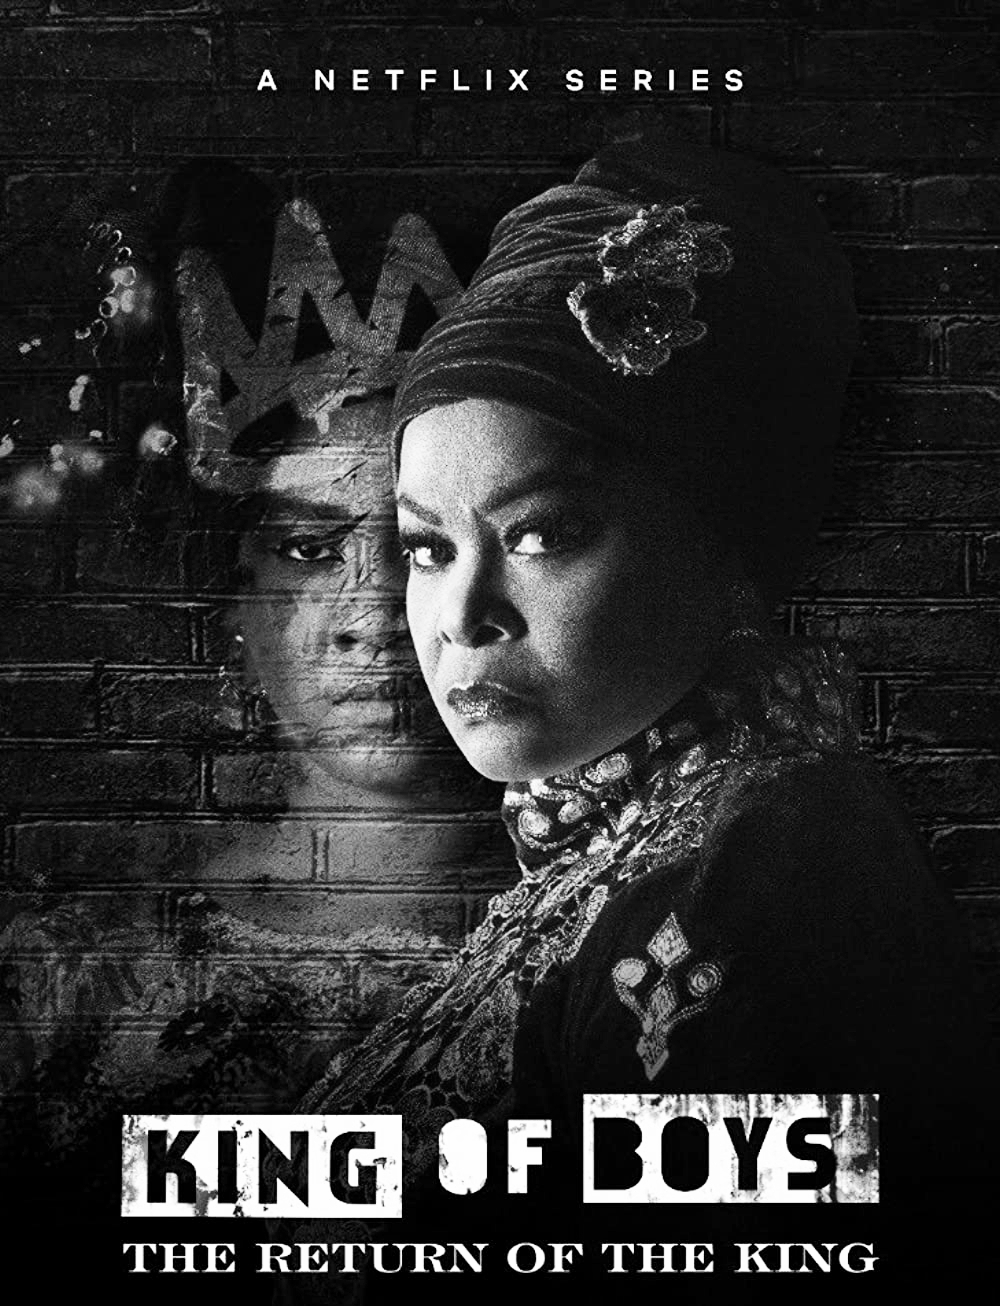 King of Boys: The Return of the King Review